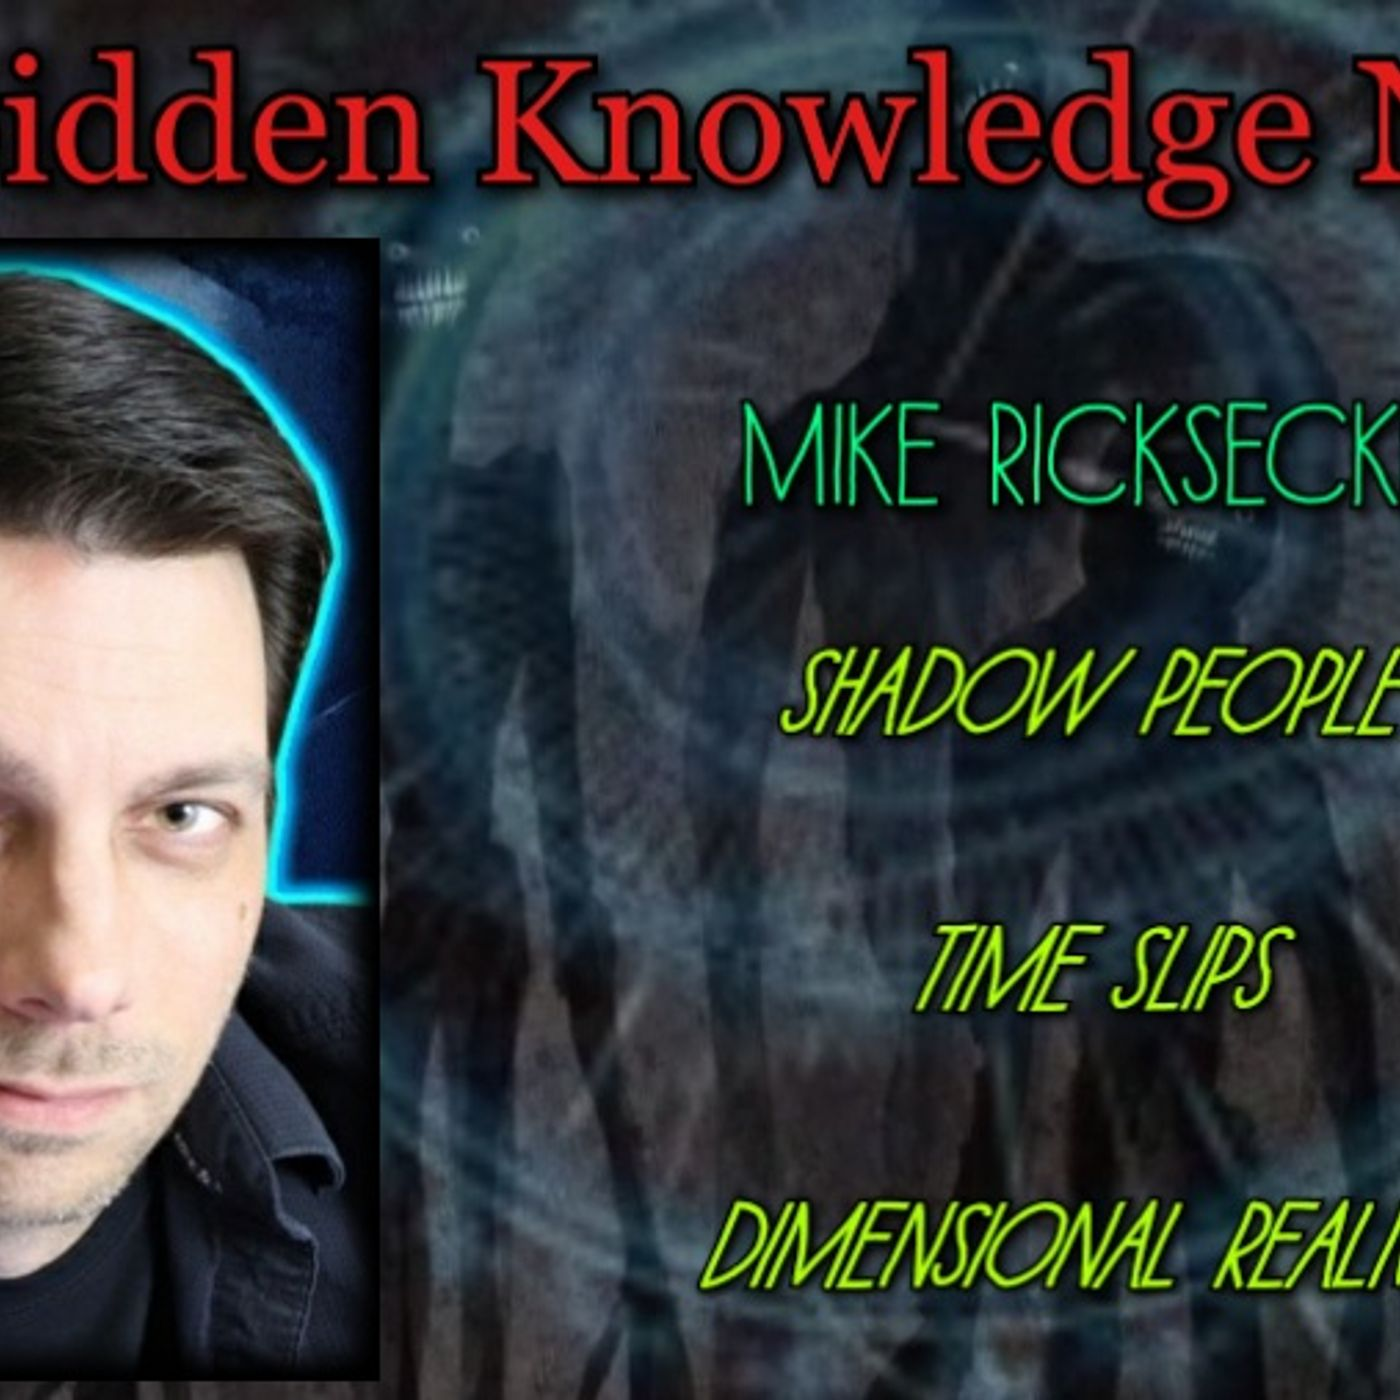 Shadow People - Time Slips - Dimensional Realms with Mike Ricksecker